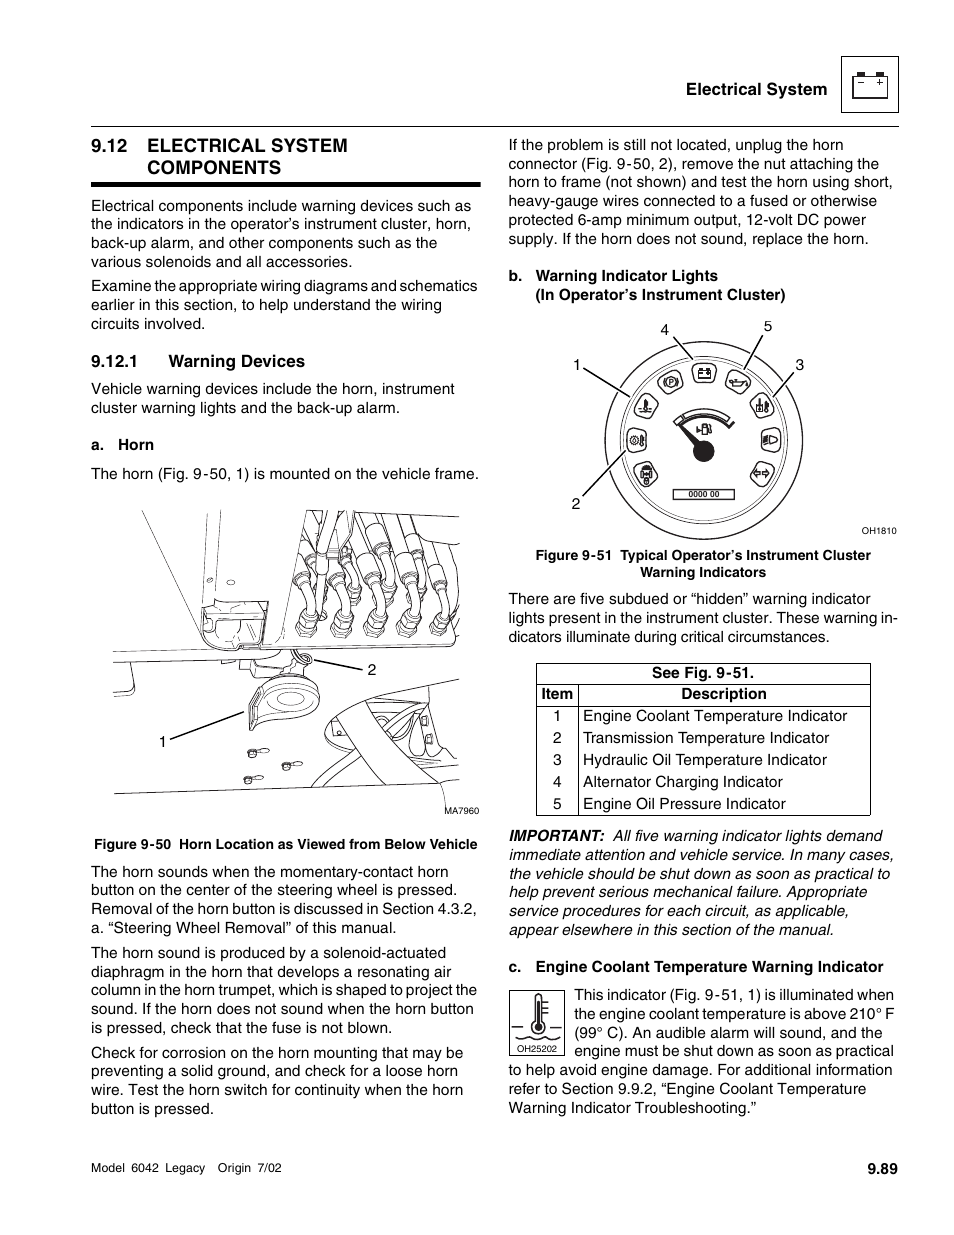 Electrical system components, Warning devices, 12 electrical system  components | SkyTrak 6042 Service Manual User Manual | Page 459 / 544